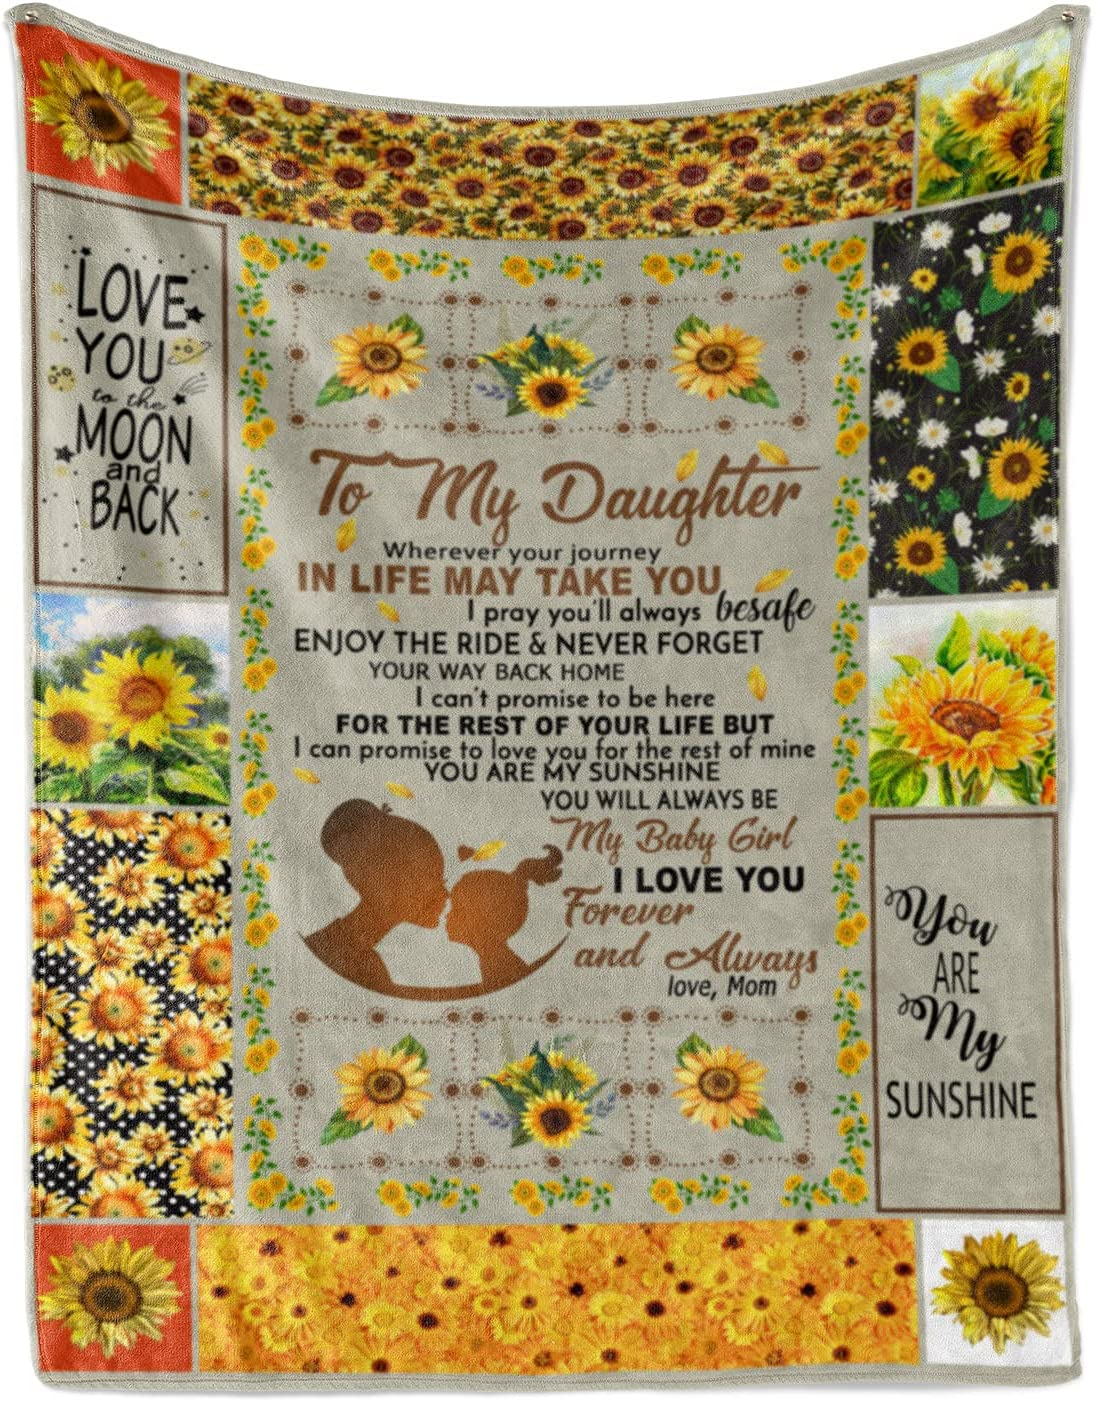 thanhlk Butterfly Fleece Max 55% OFF Blanket - MOM Boston Mall to I Love You Daughter